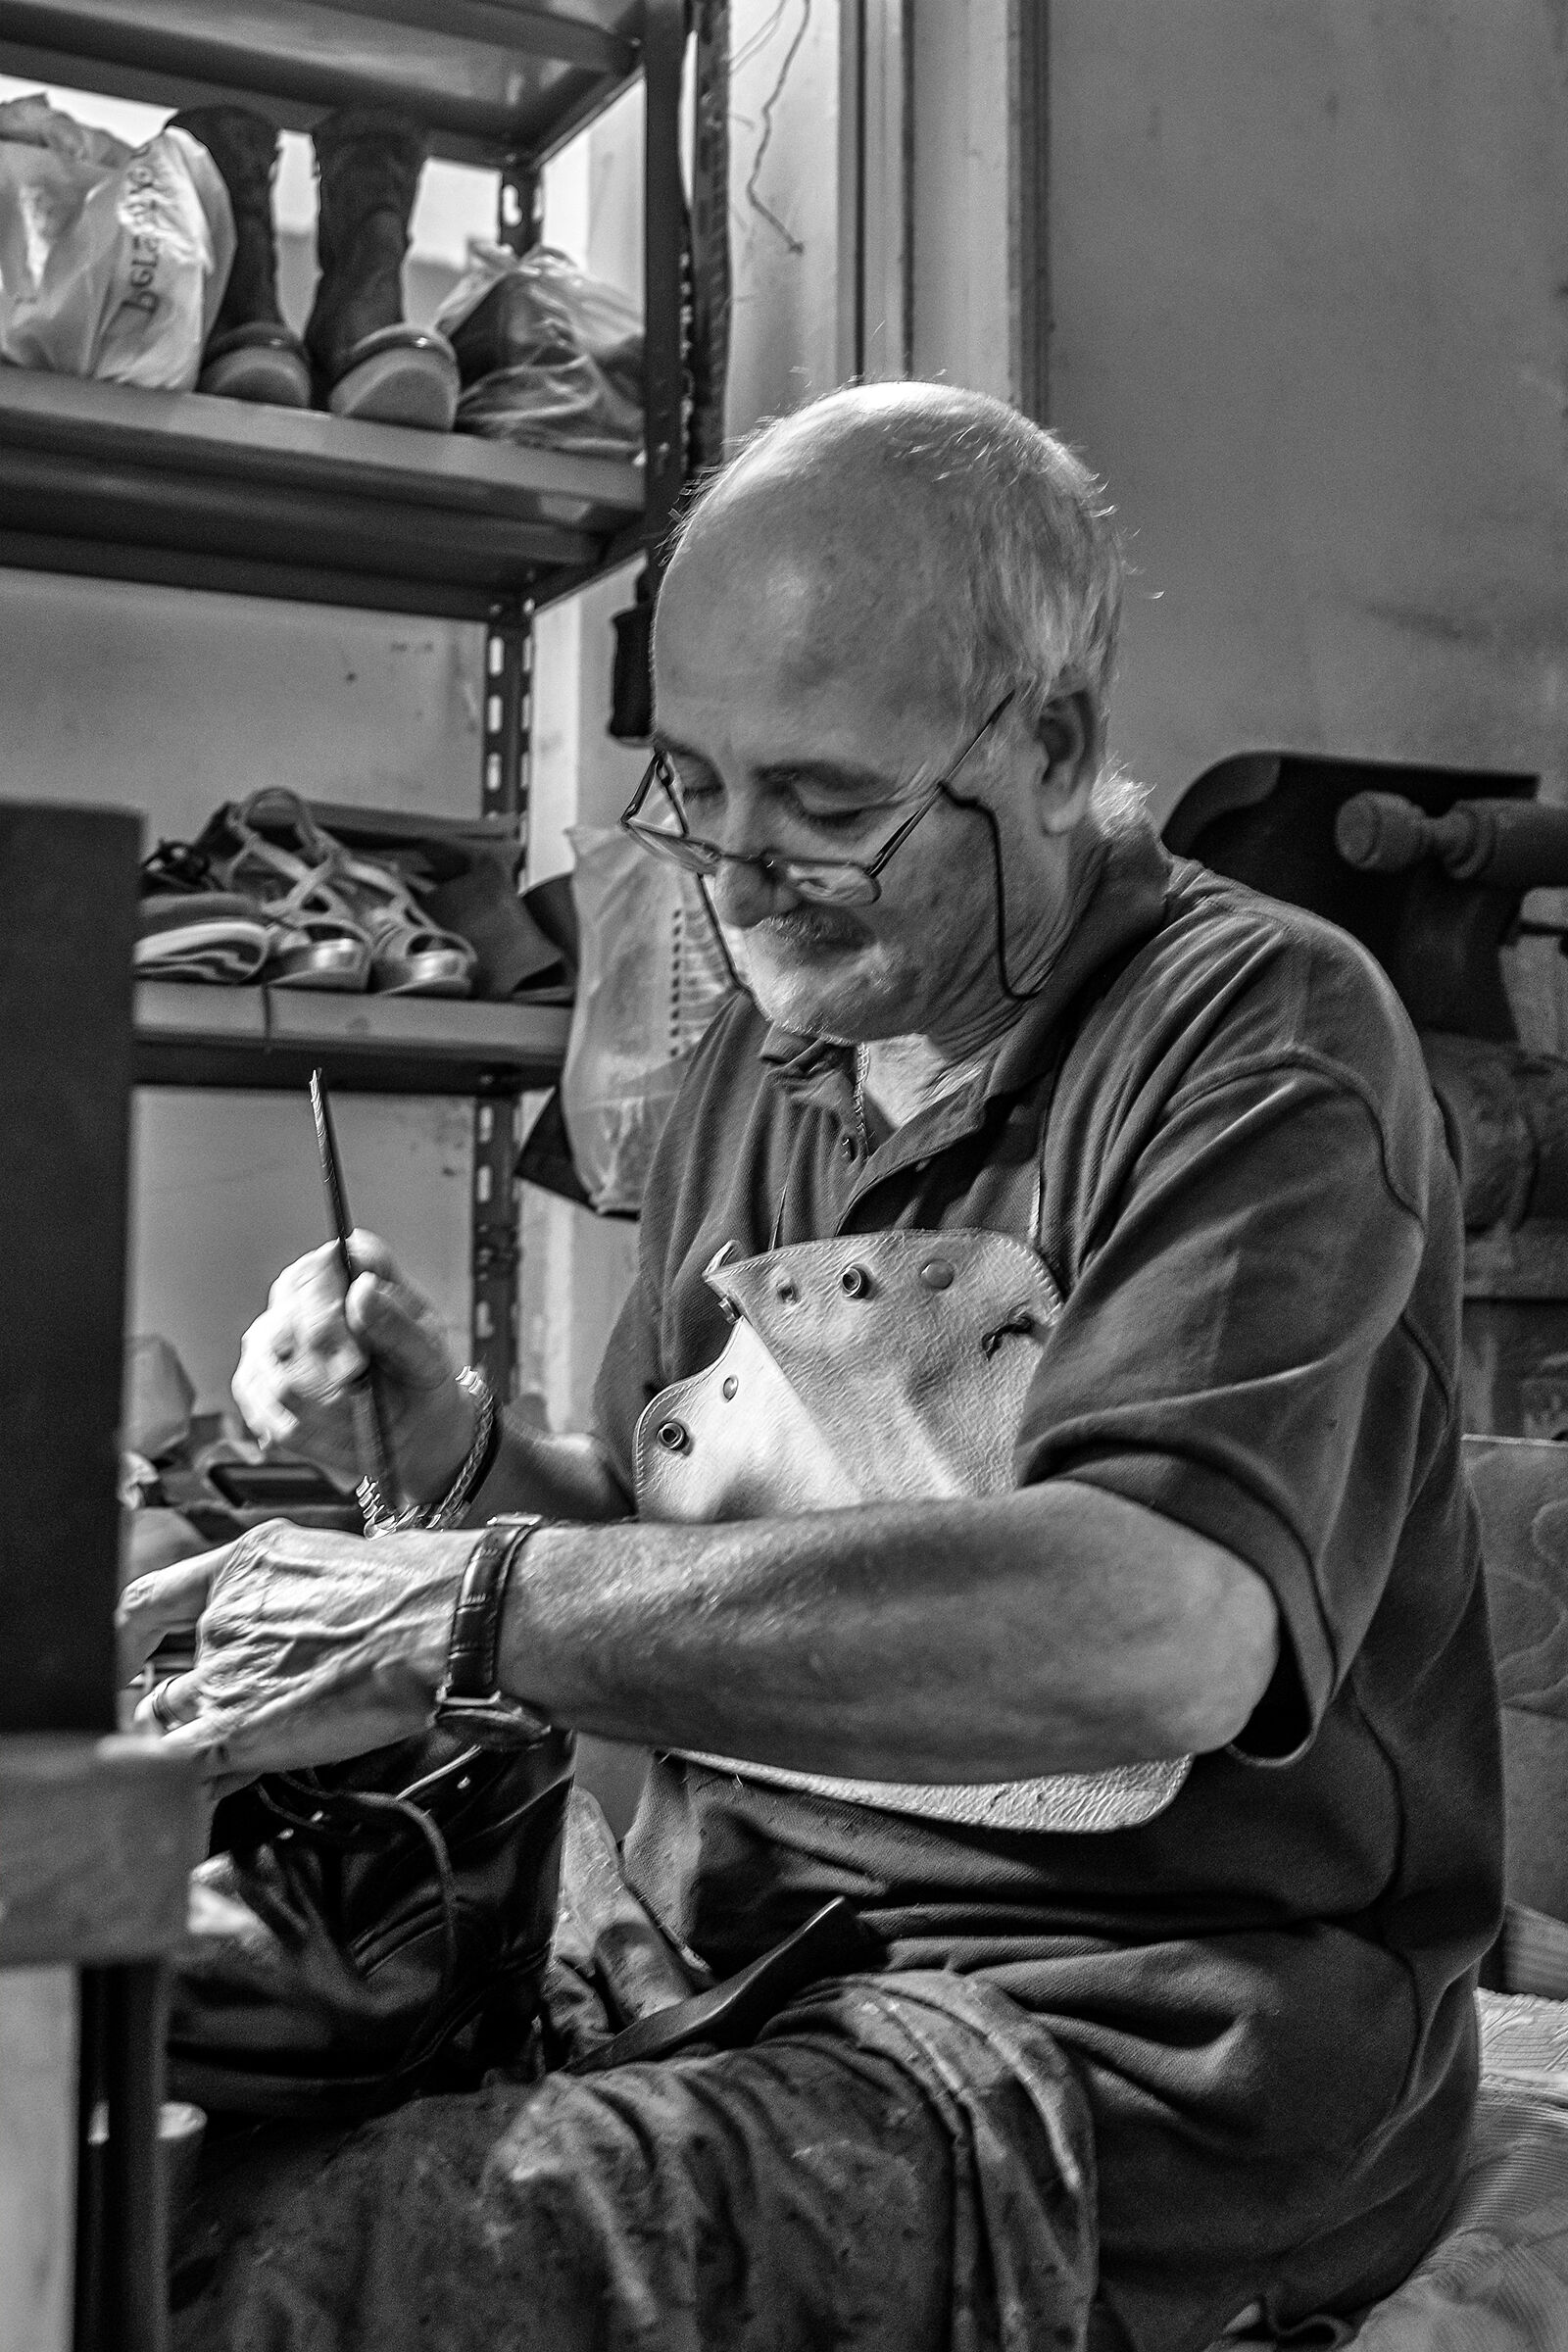 In the shoemaker's shop...